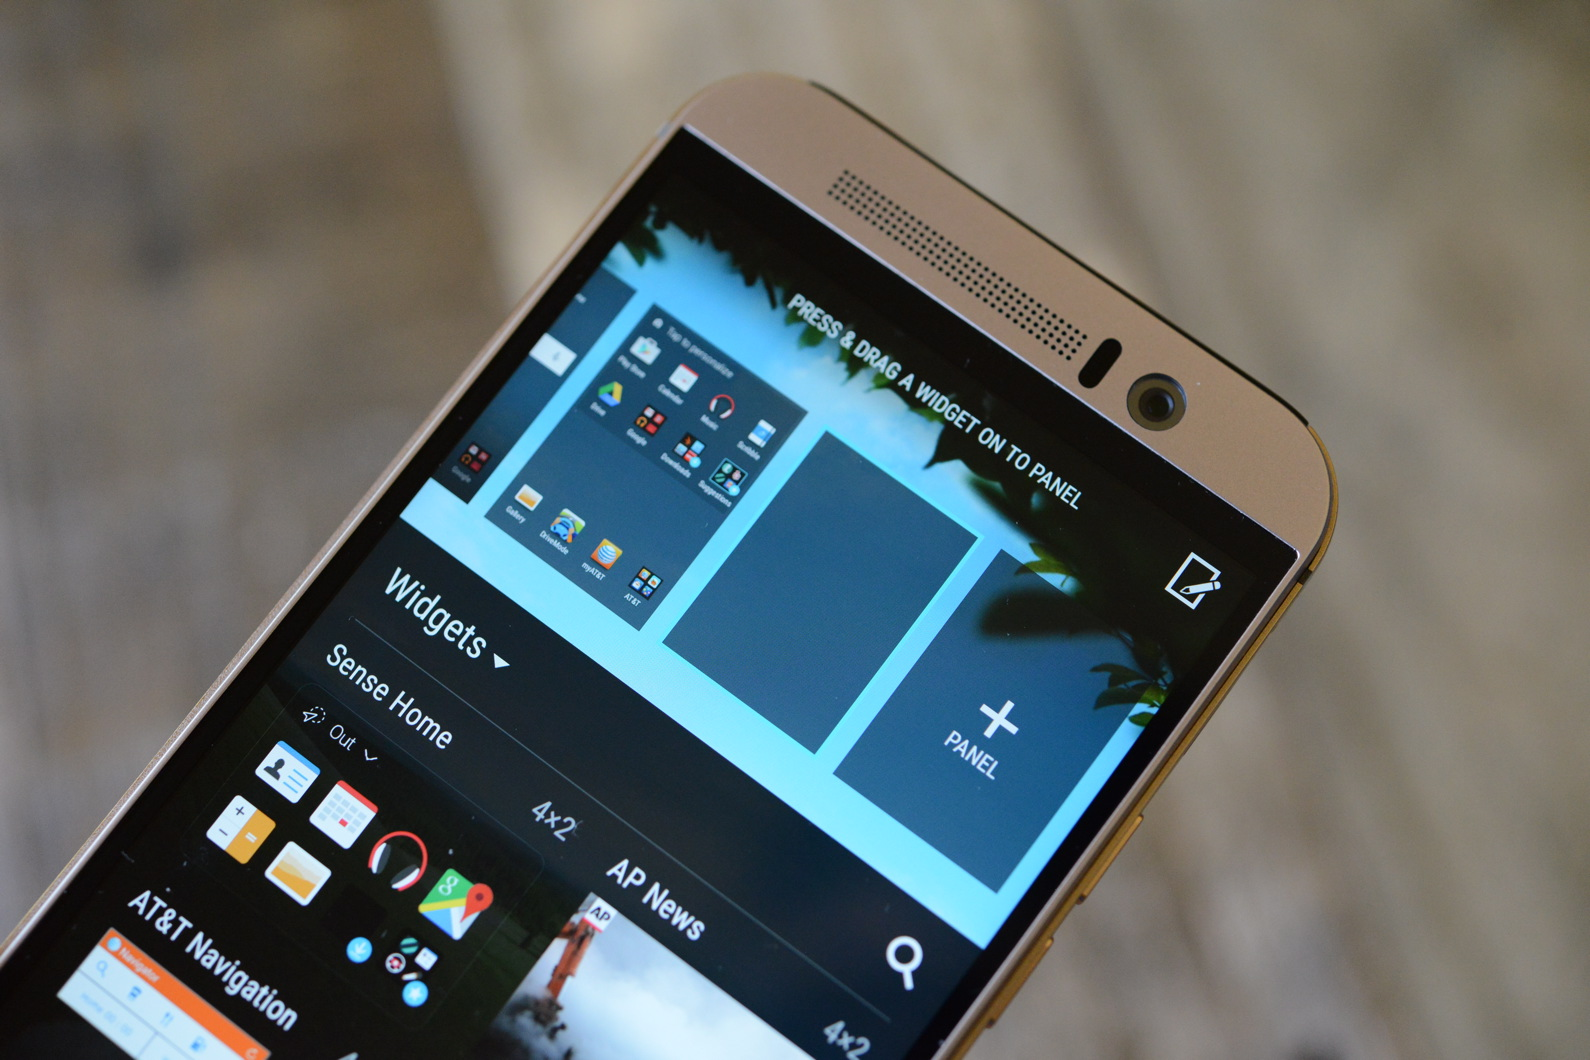 HTC One M9 Review: Lollipop, Octa-Core Snapdragon, Boomsound Impress